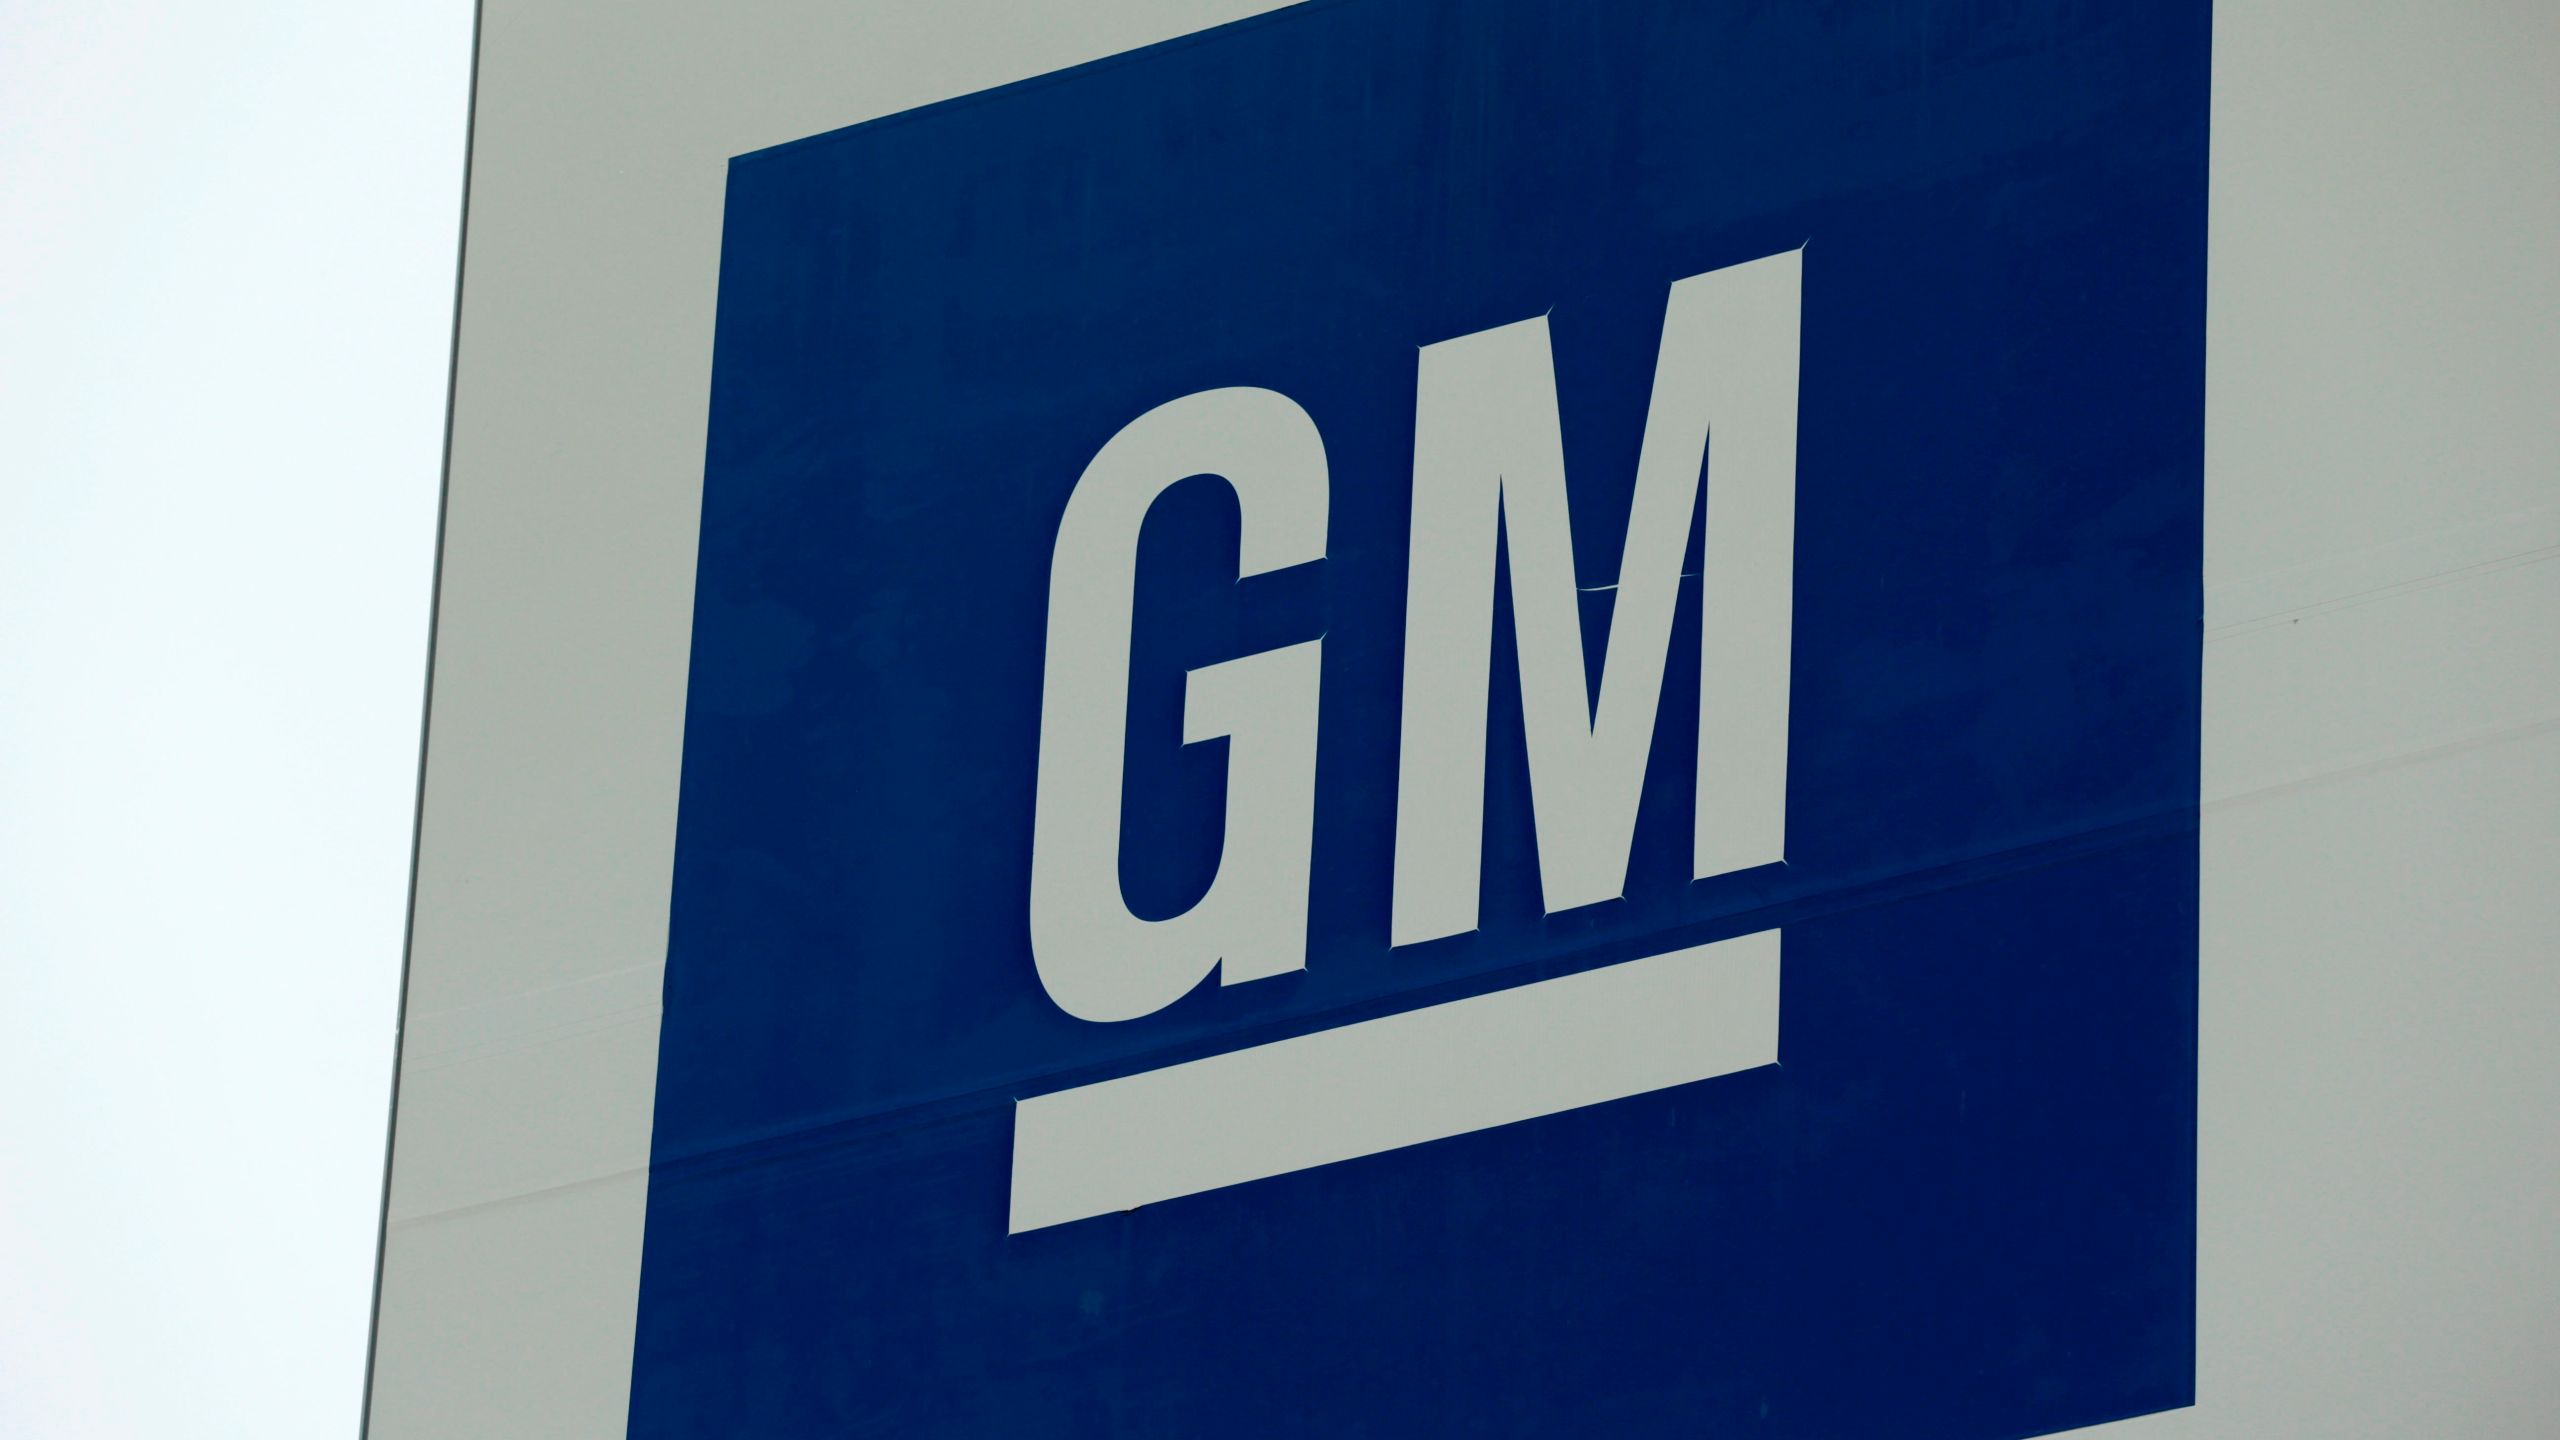 A sign is seen outside of General Motors Detroit- Hamtramck assembly plant on January 27, 2020 in Detroit, Michigan. (JEFF KOWALSKY/AFP via Getty Images)